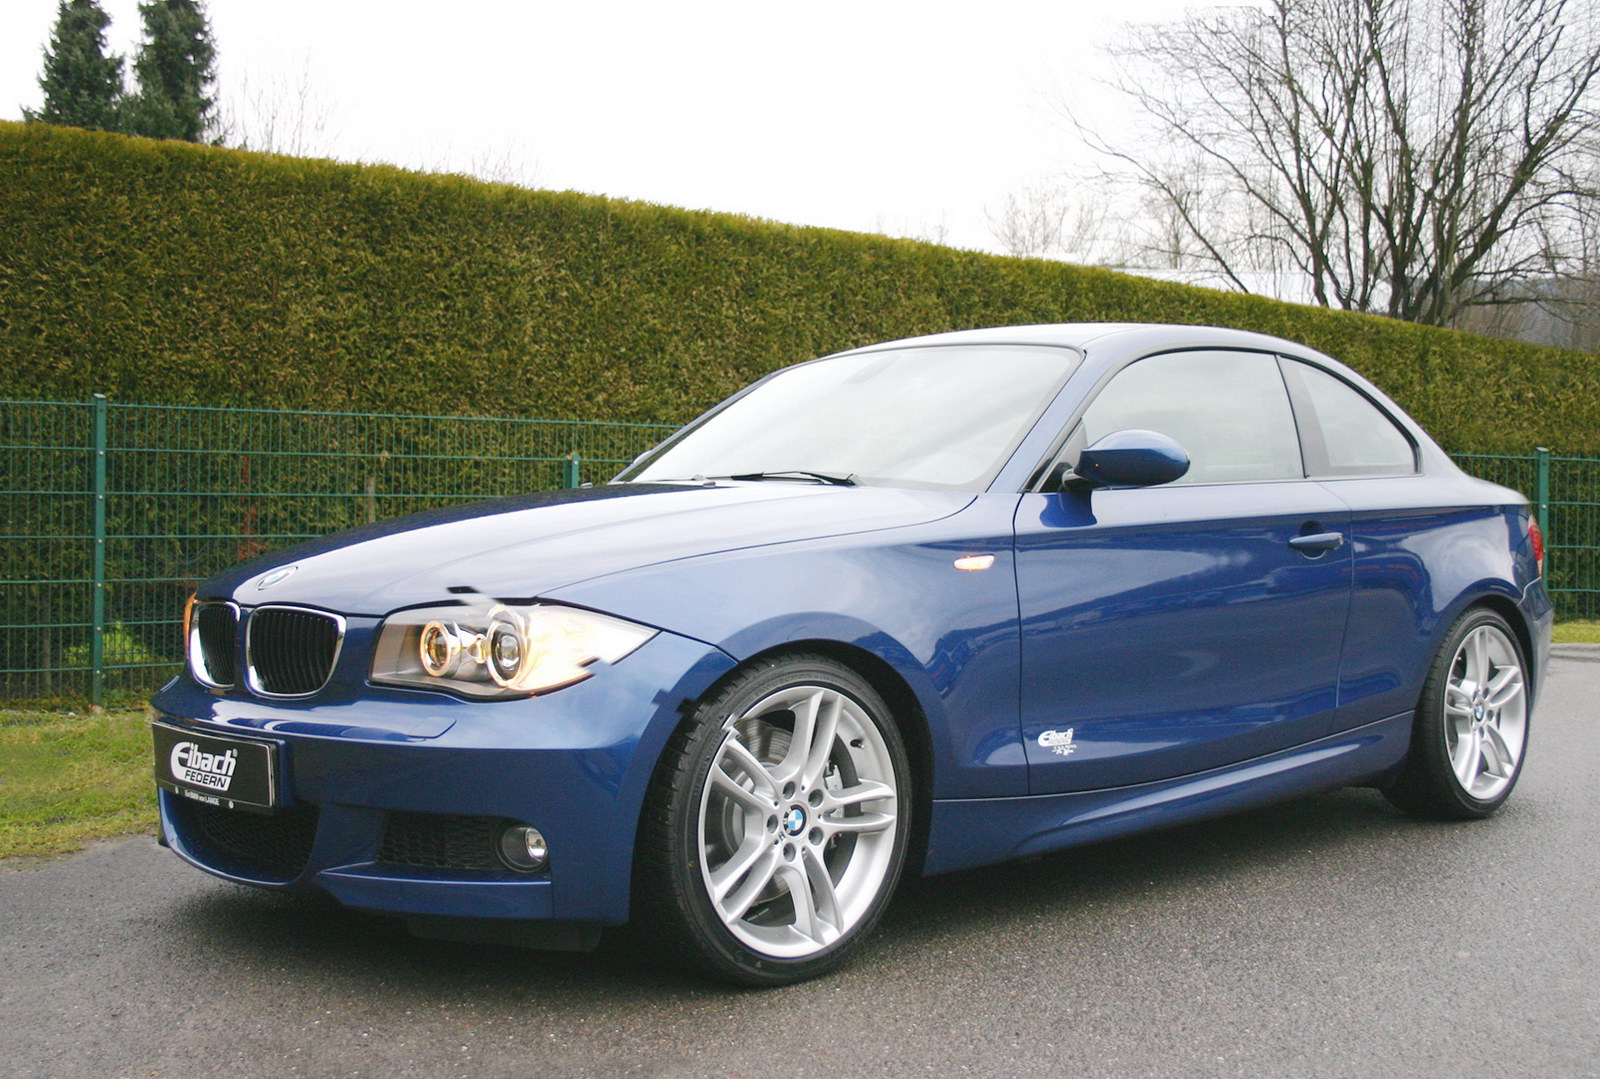 2009 Bmw 1 Series Image 6